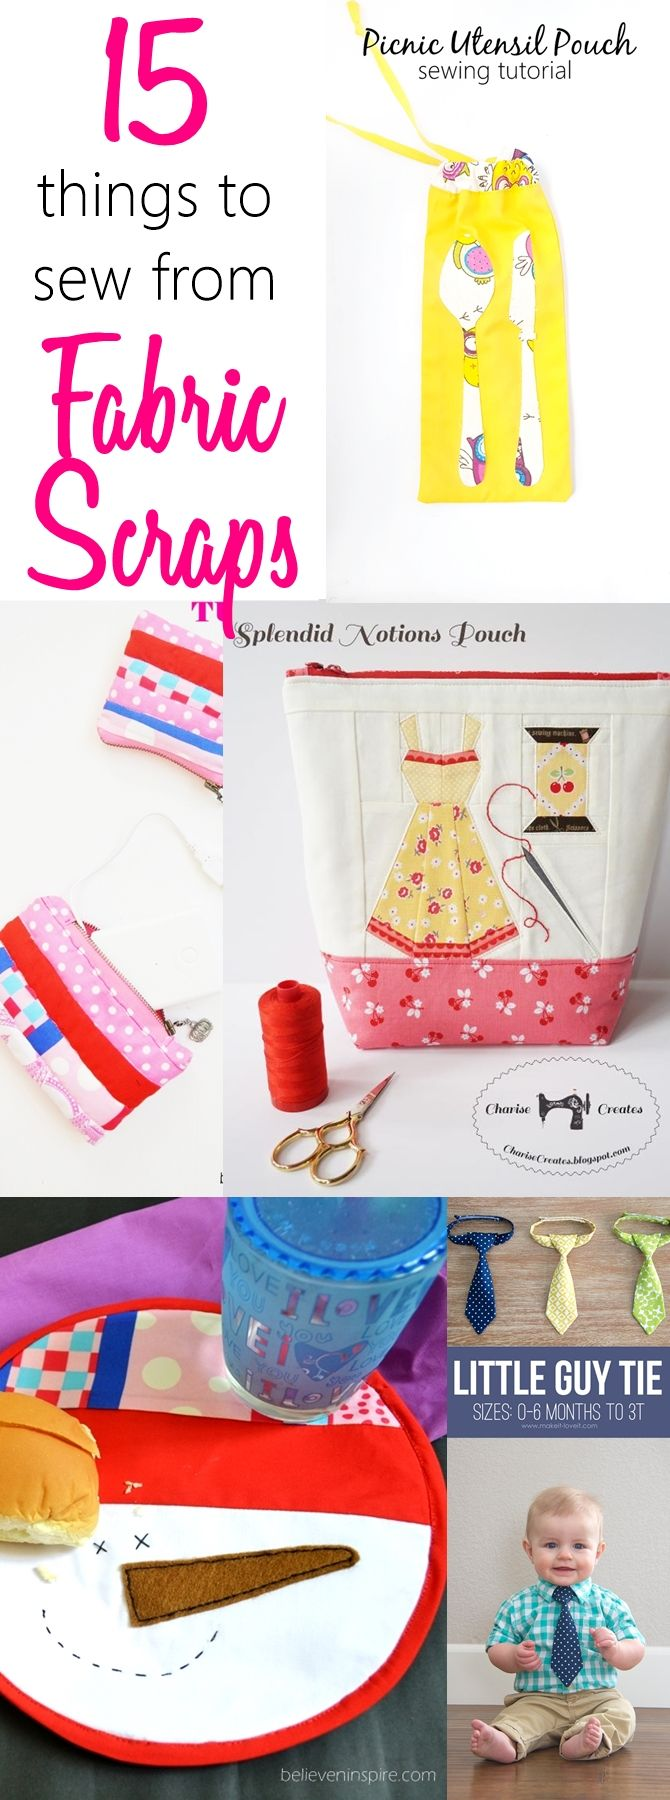 15 things to sew from fabric scraps. Easy things to sew with scraps, cool things to make out of fabric scraps, things to make out of fabric scraps, scrap busters